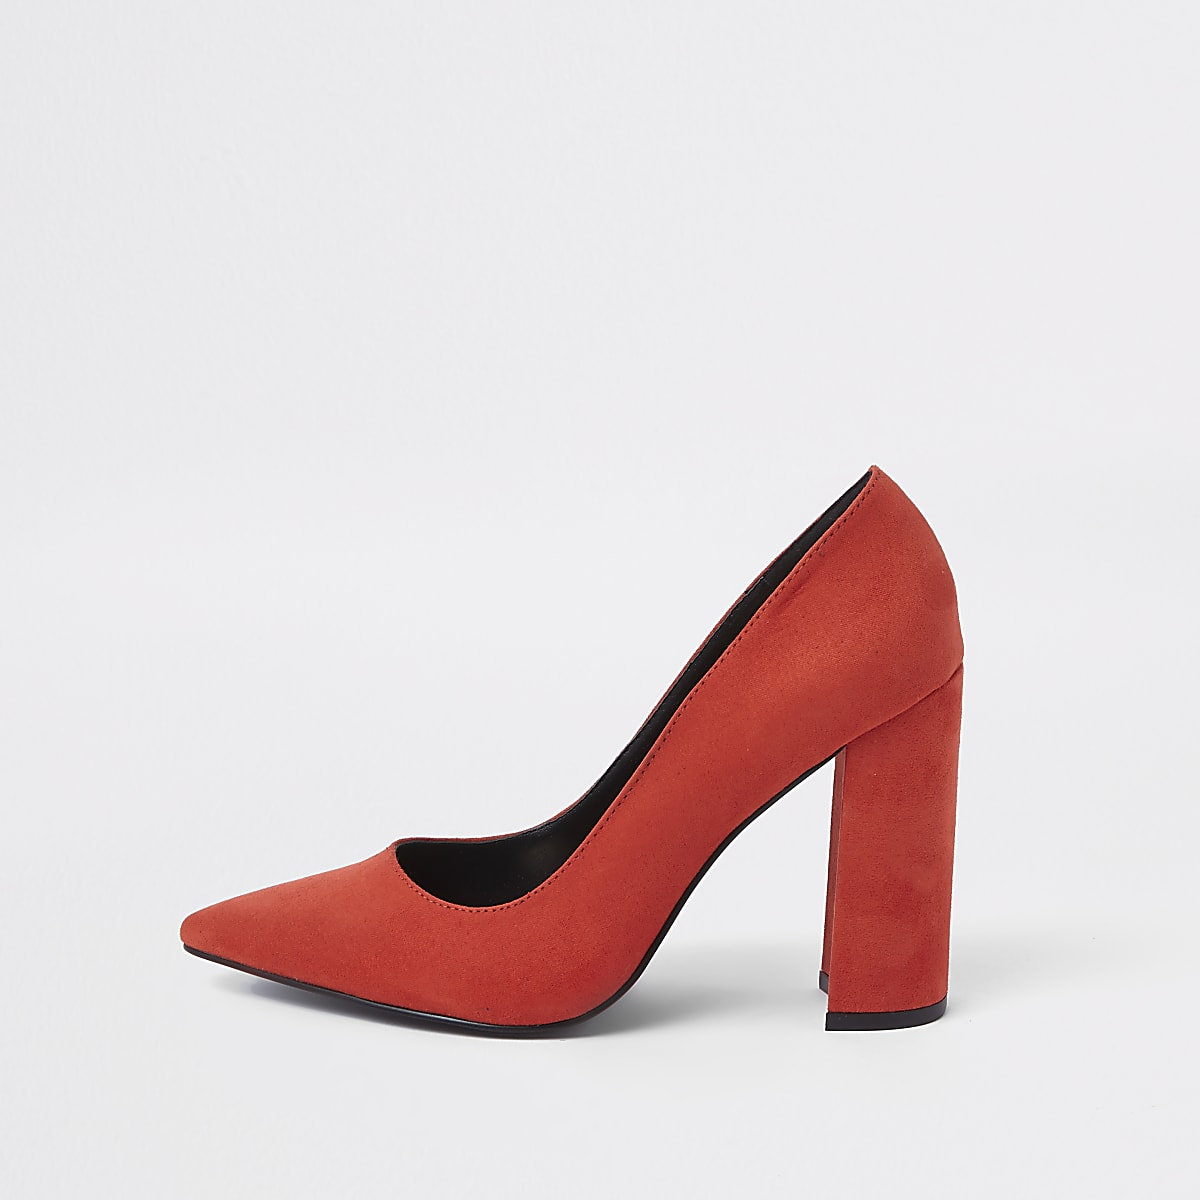 0d1ca02a0a4 Red wrap around block heel court shoes